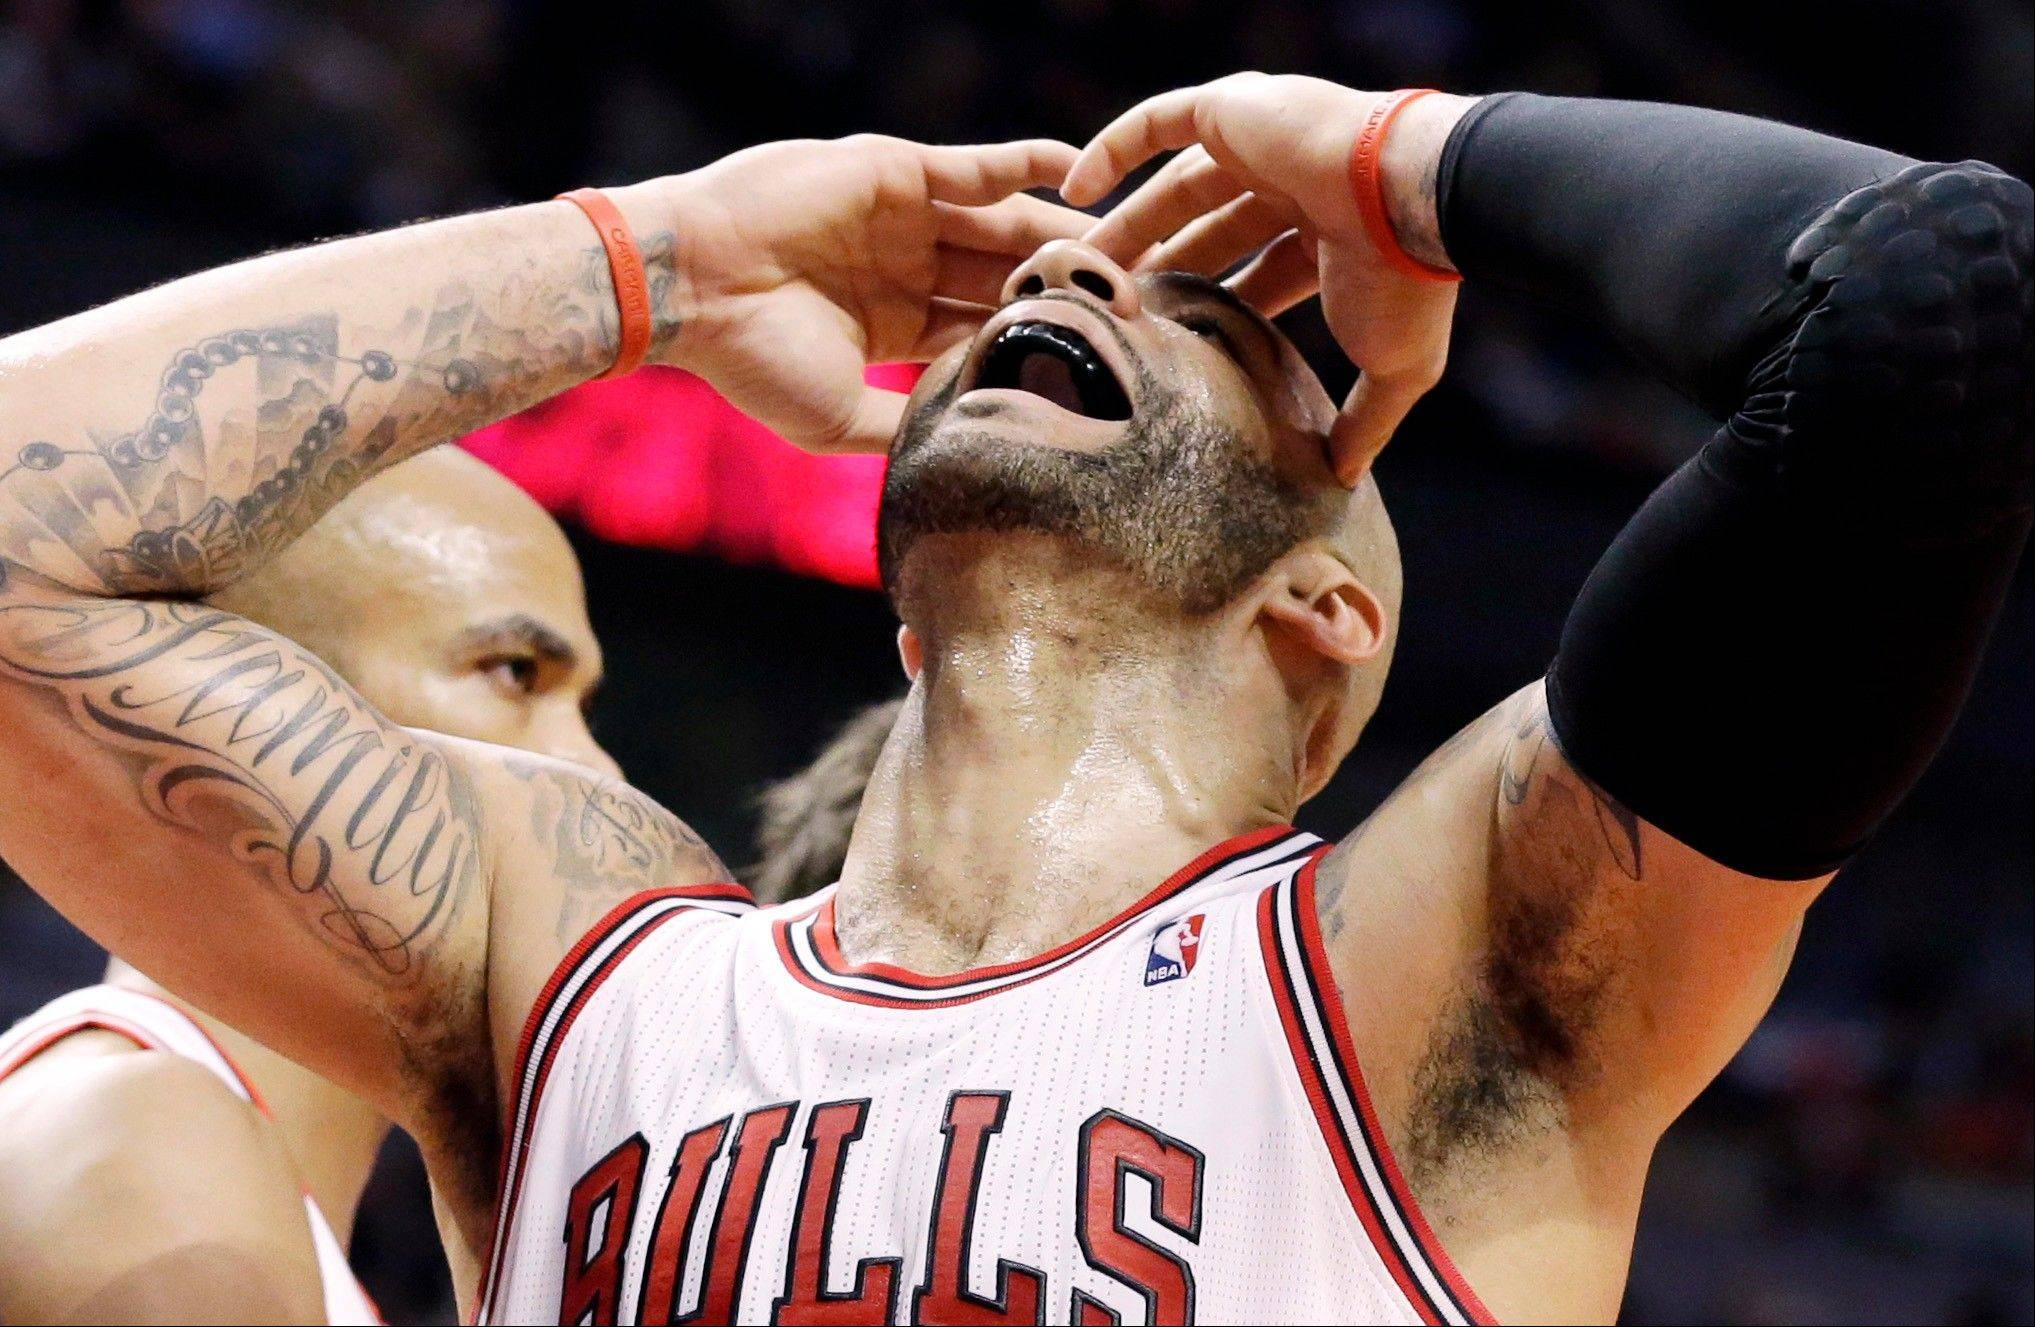 Bulls forward Carlos Boozer reacts after missing a basket during Saturday night's loss to Memphis at the United Center.